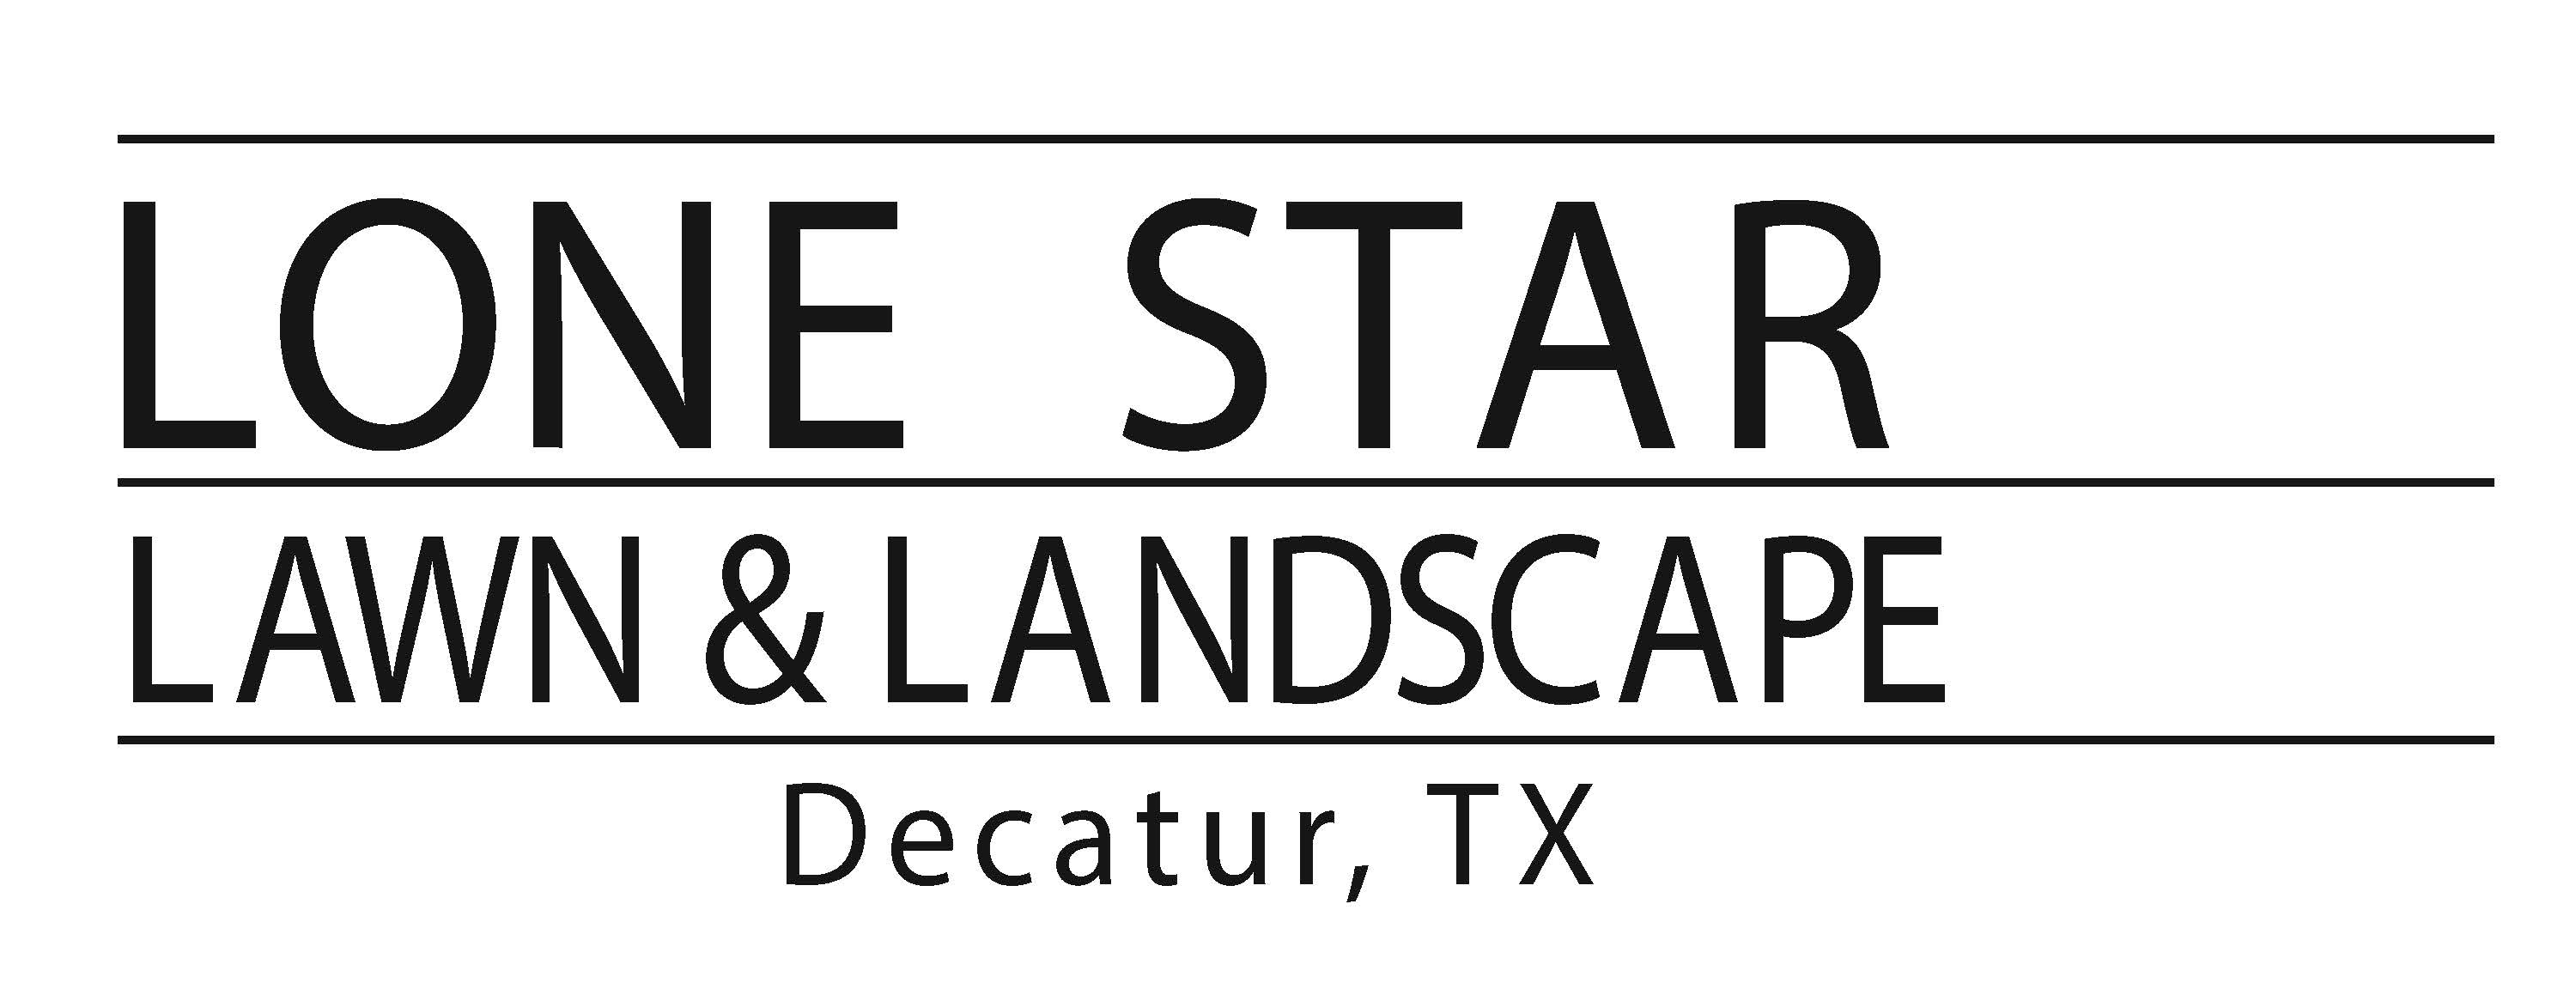 Lone Star Lawn and Landscape